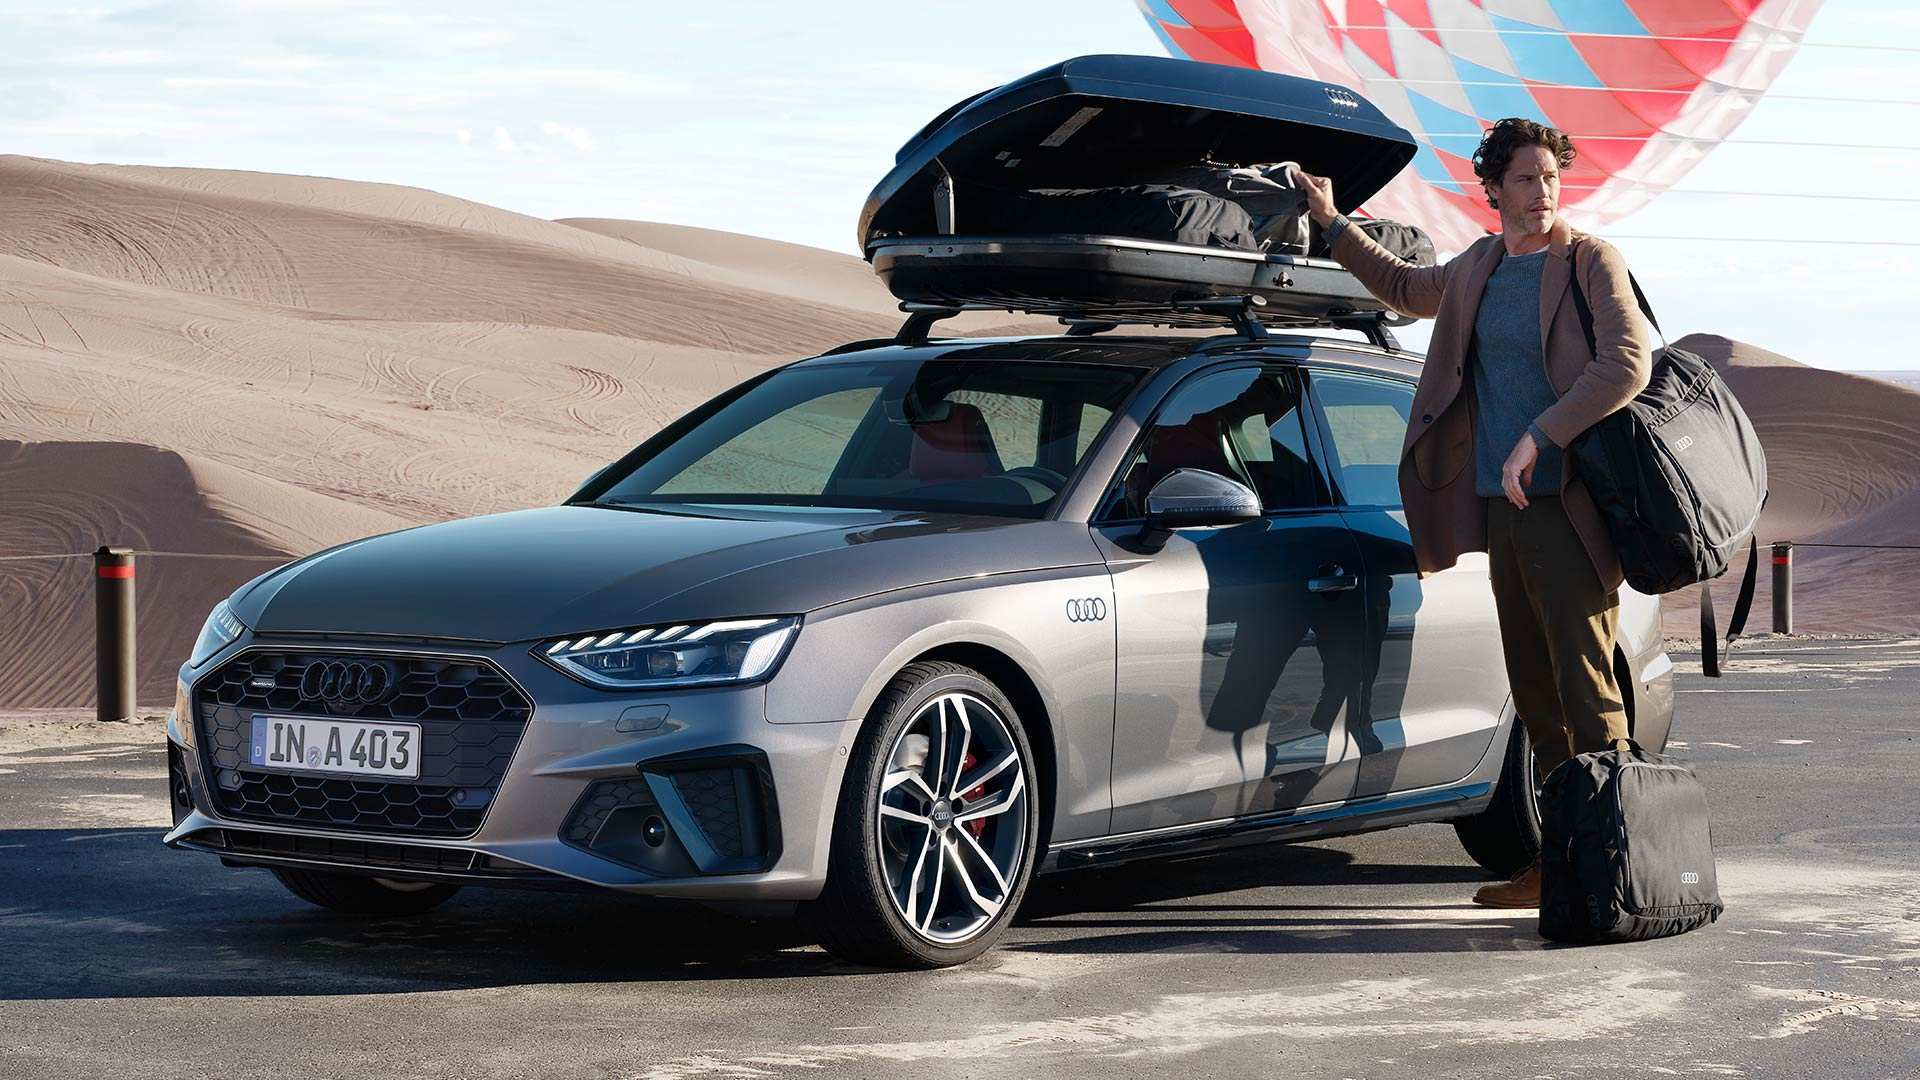 59 Concept of Audi A4 Kombi 2020 Pictures with Audi A4 Kombi 2020